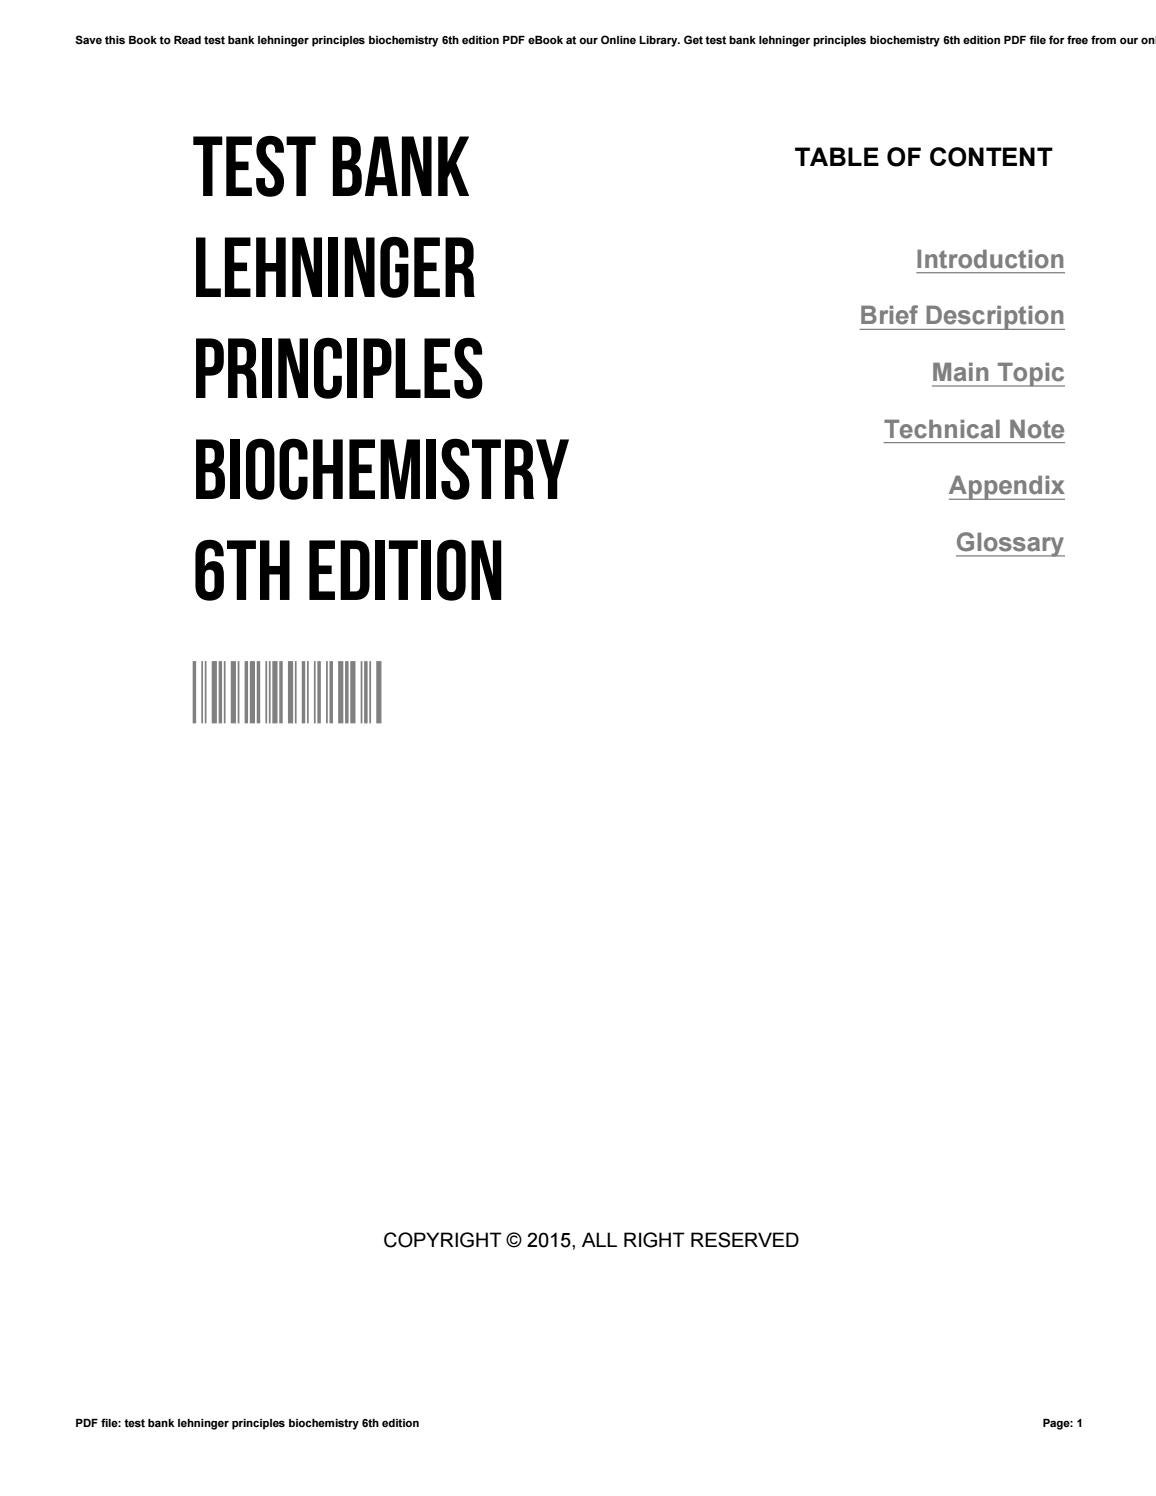 Test bank lehninger principles biochemistry 6th edition by